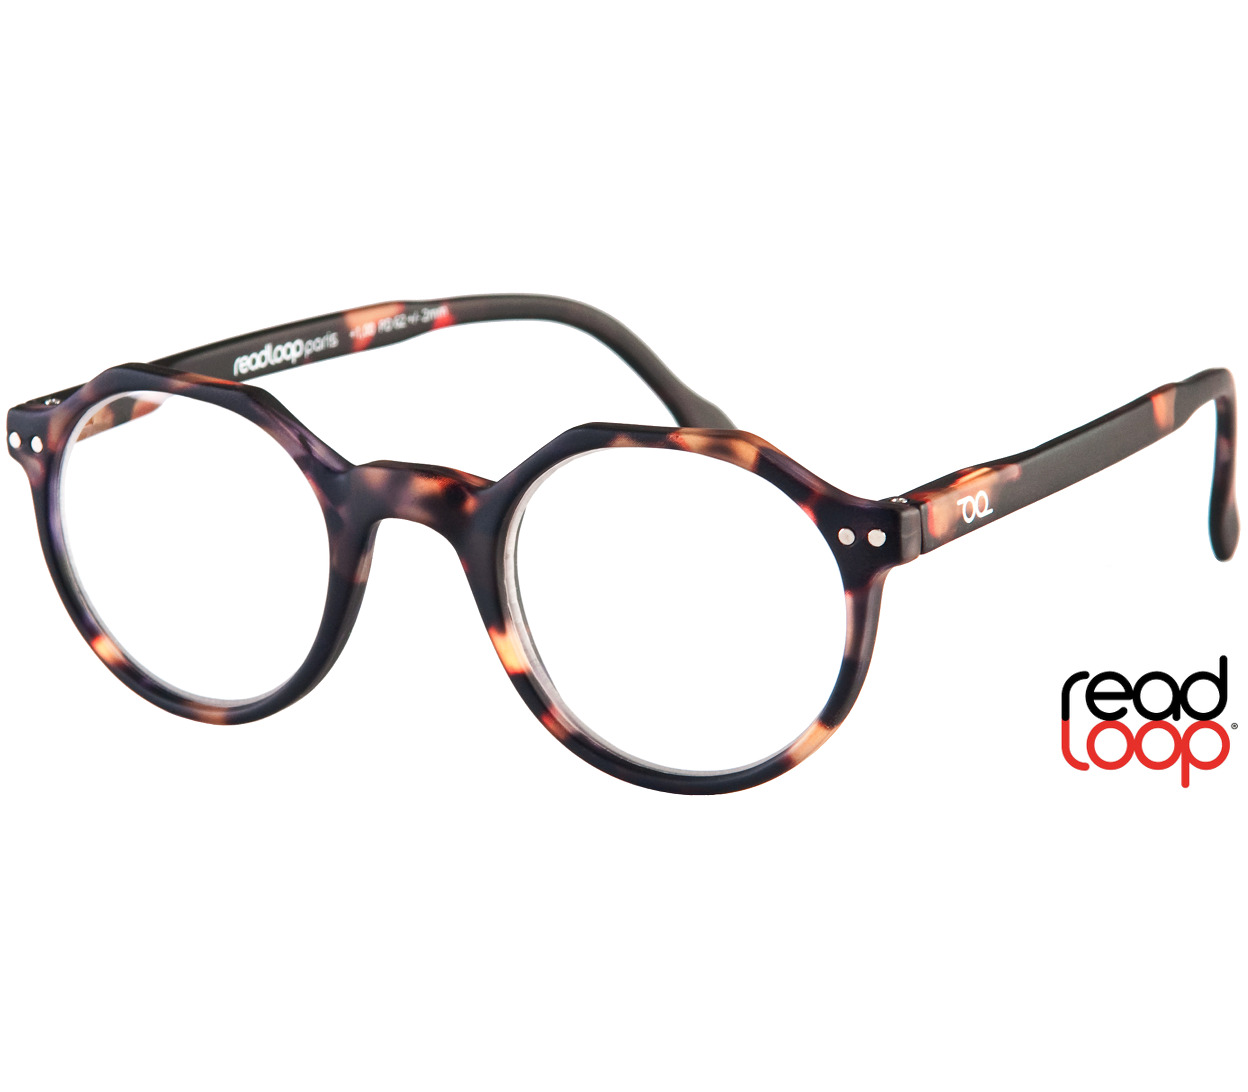 Main Image (Angle) - Hurricane (Tortoiseshell) Retro Reading Glasses